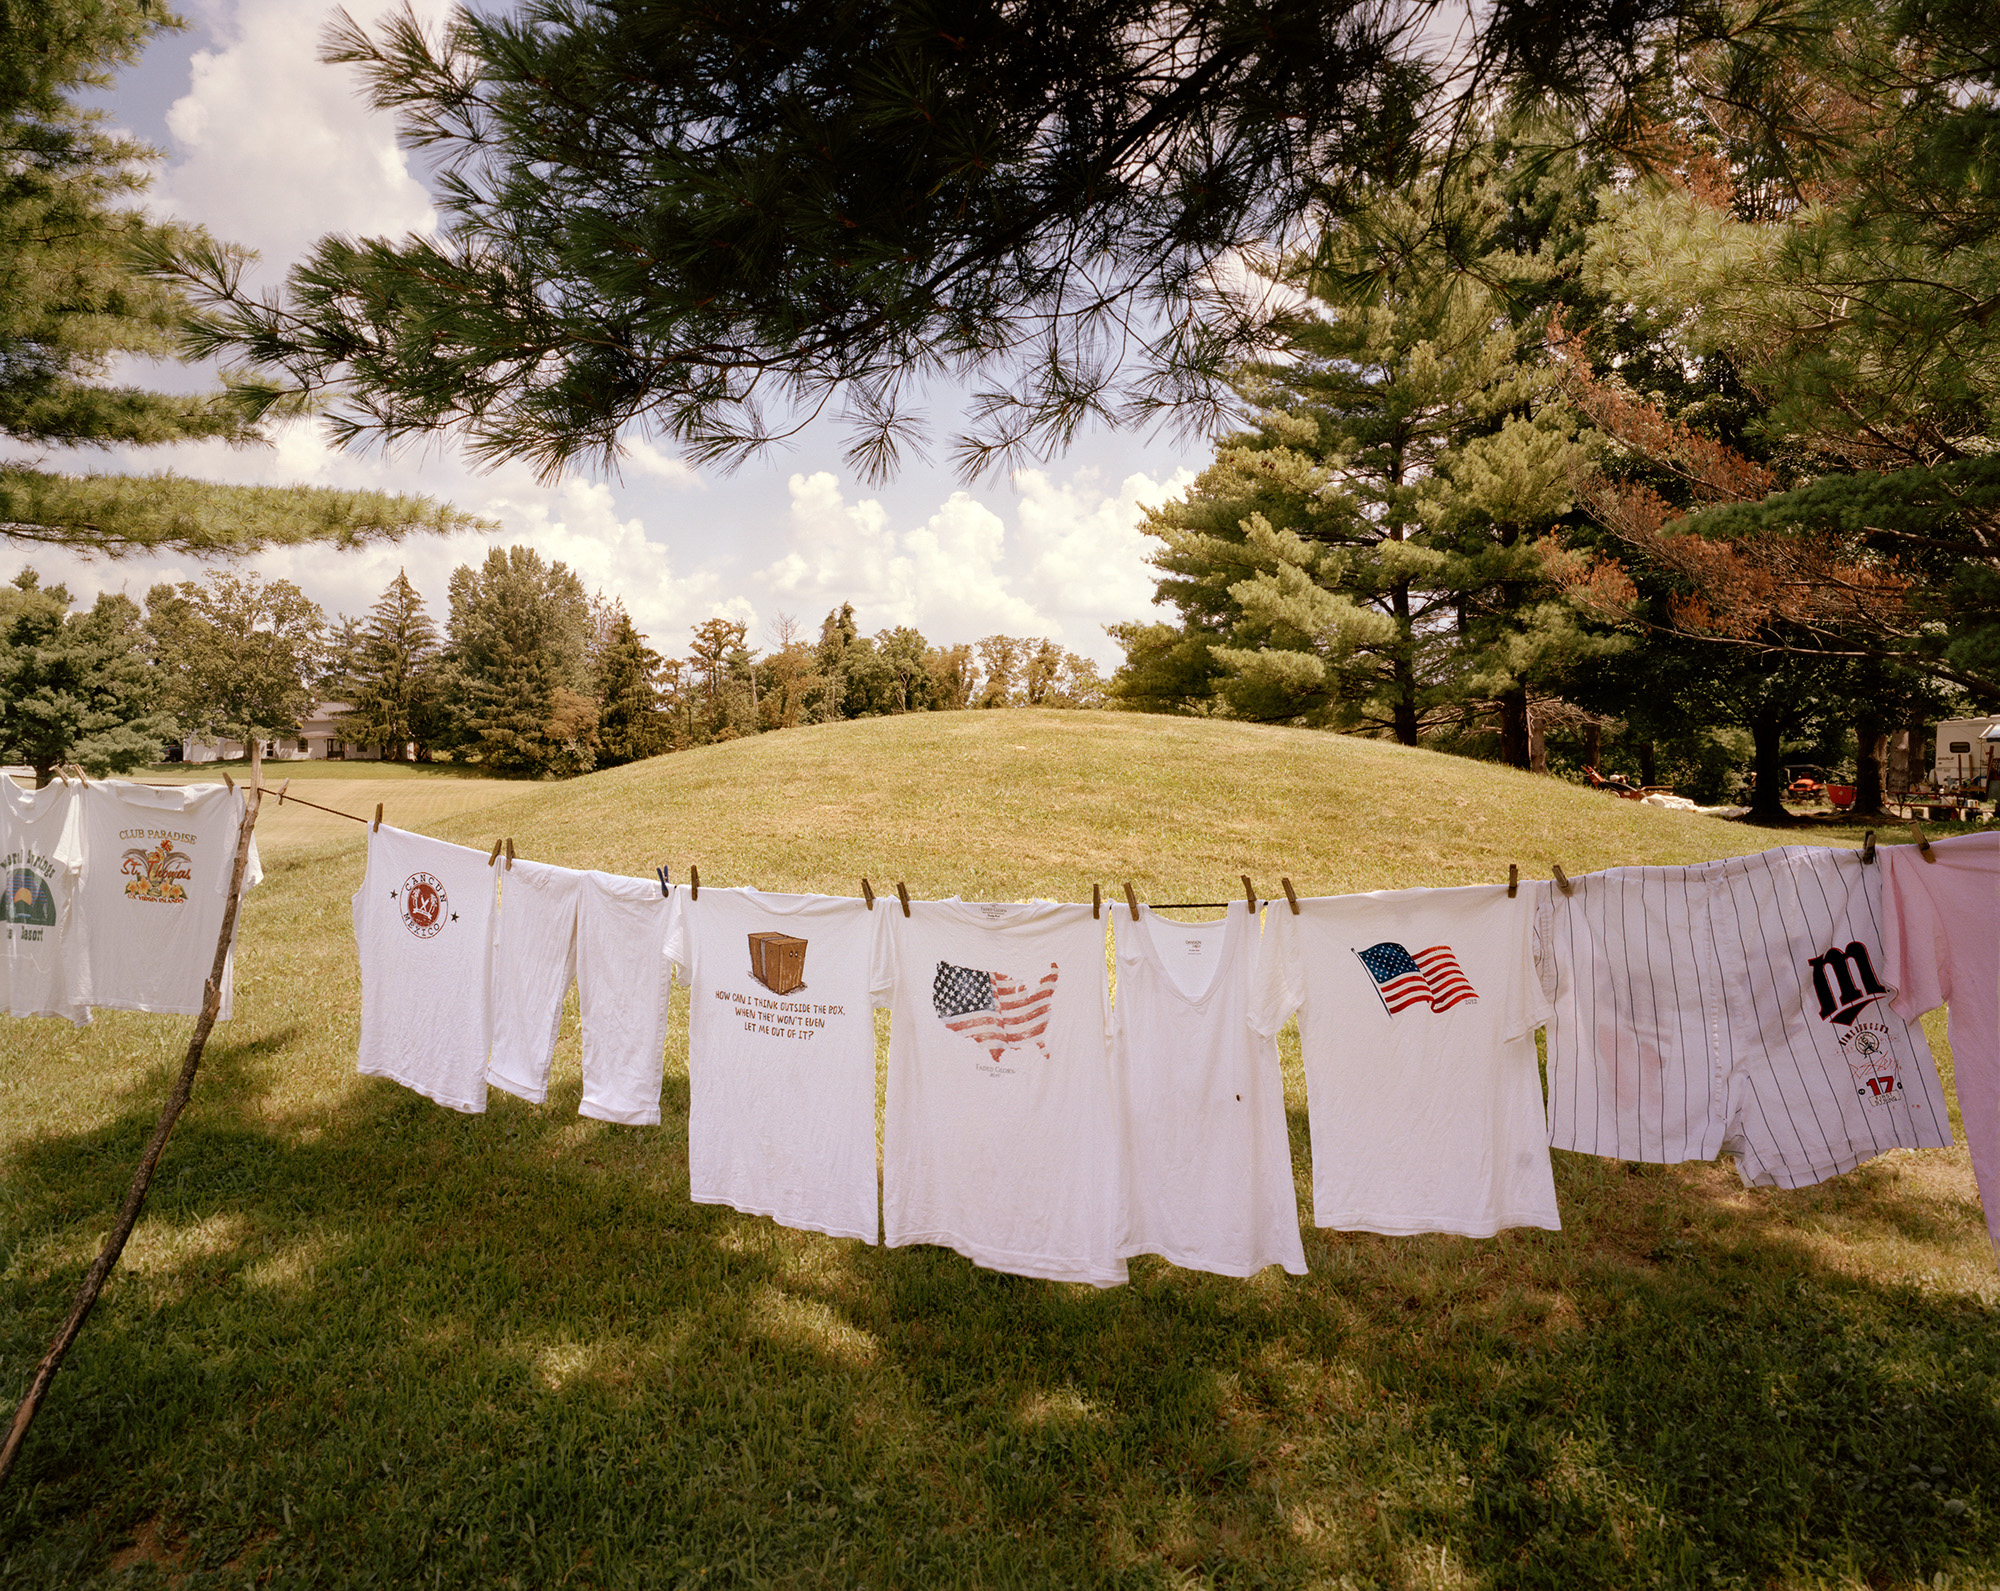 Laundry, Indian Mound Campground, New Marshfield, OH